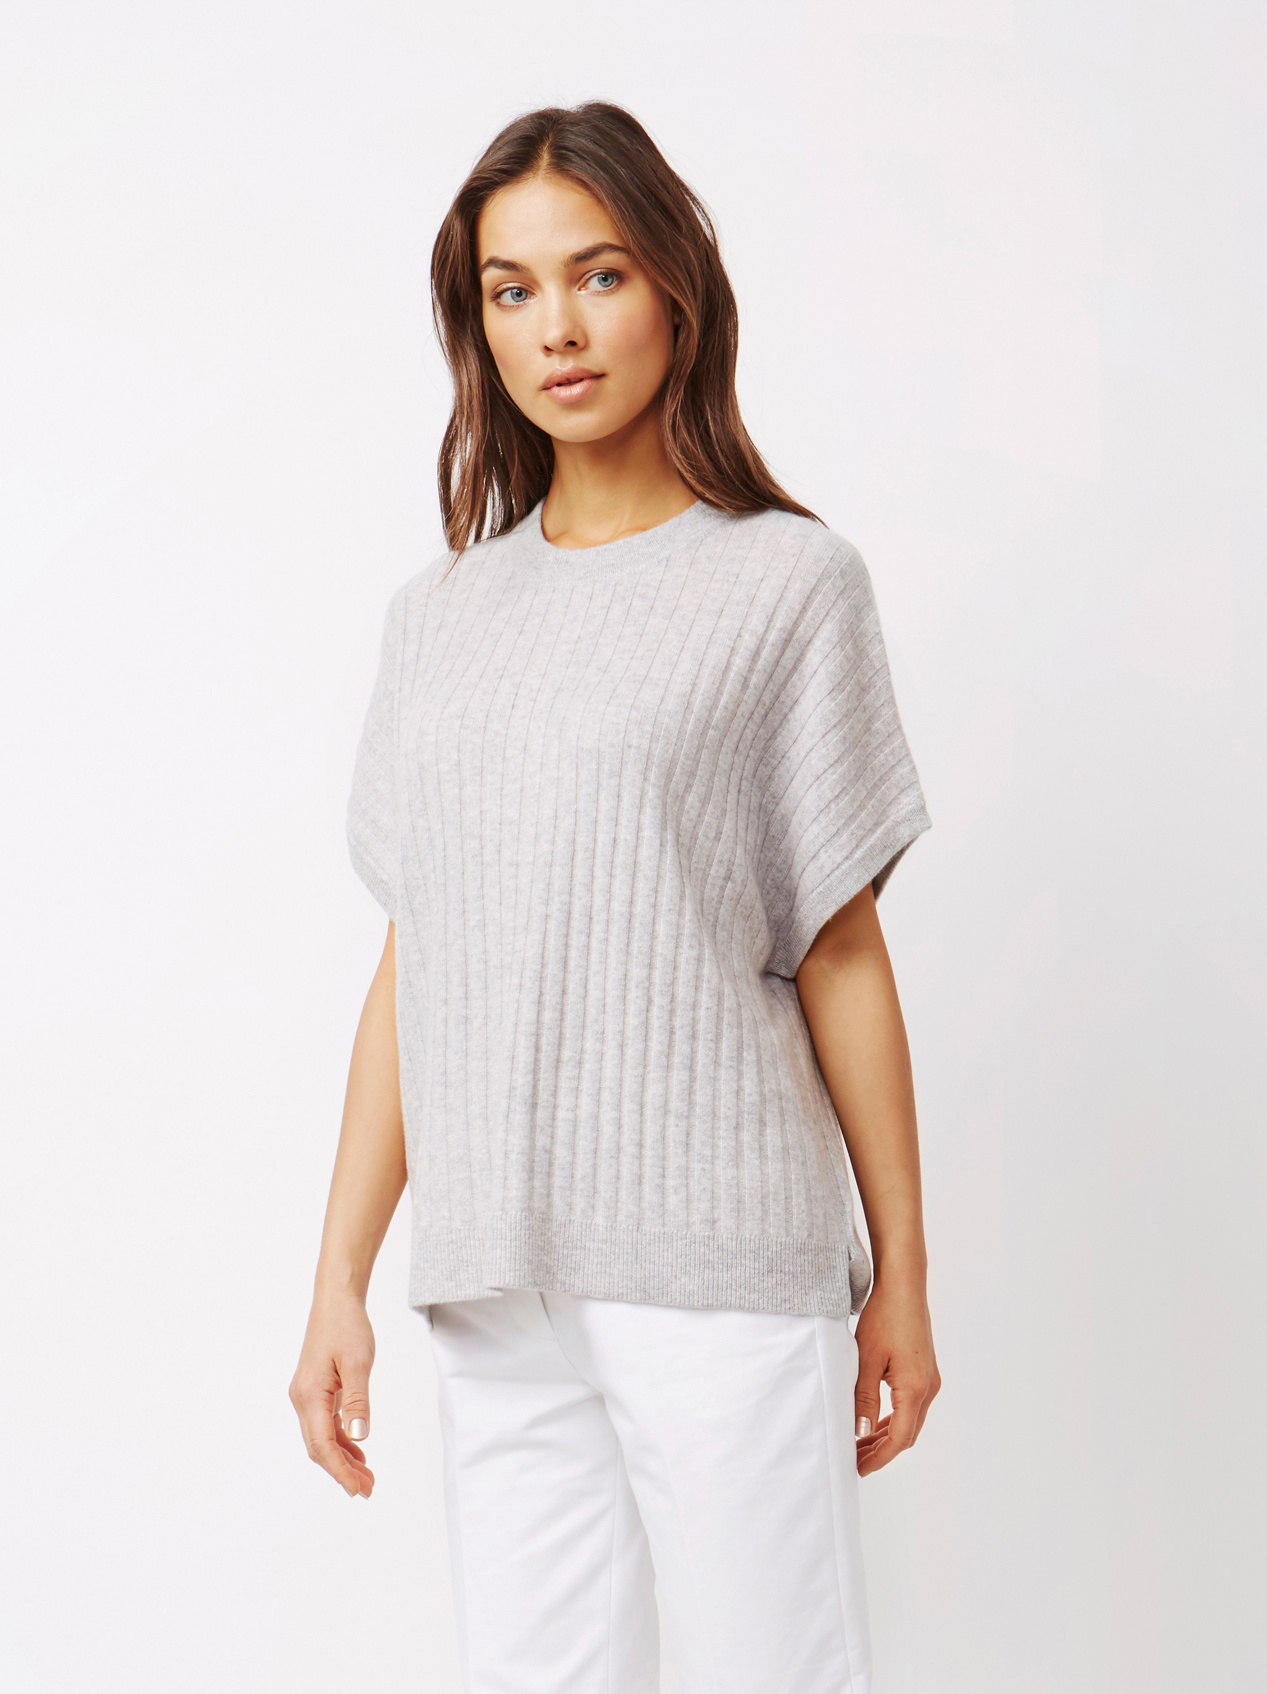 Soft Goat Women's Ribbed Poncho Light Grey